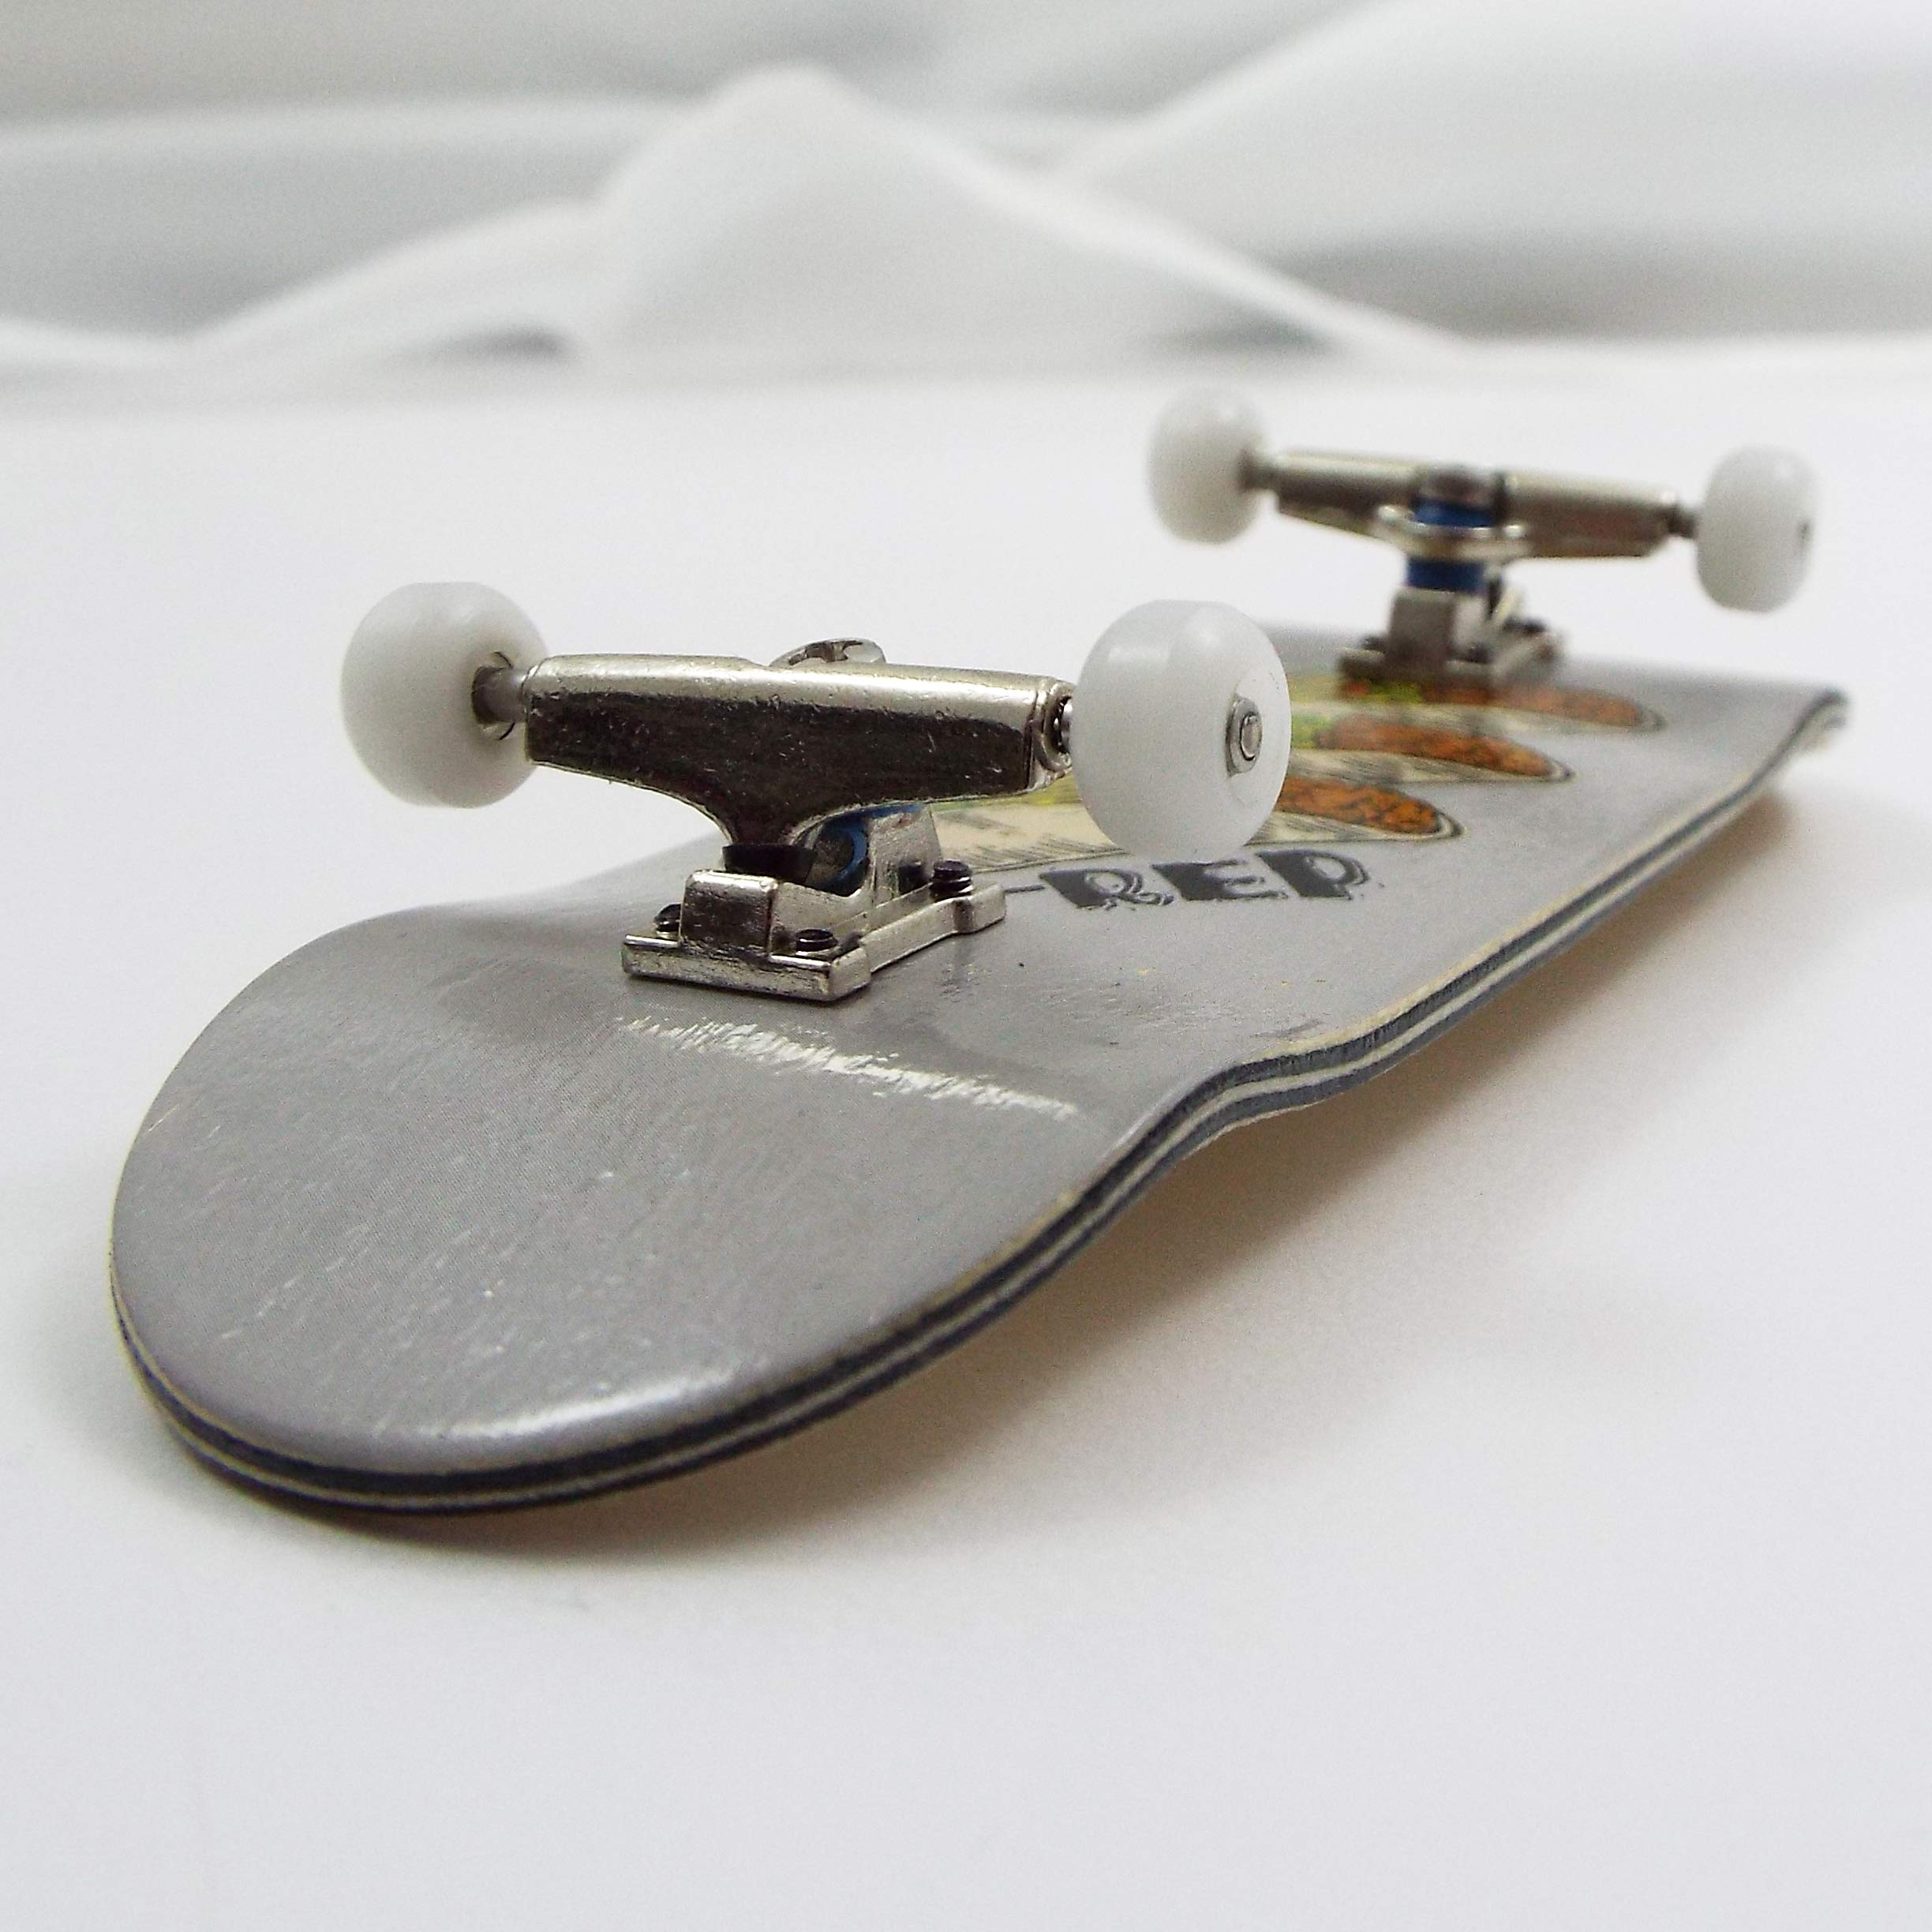 P-REP BKF Tuned Complete Wooden Fingerboard 34mm x 98mm - Tres Taco by P-REP (Image #2)